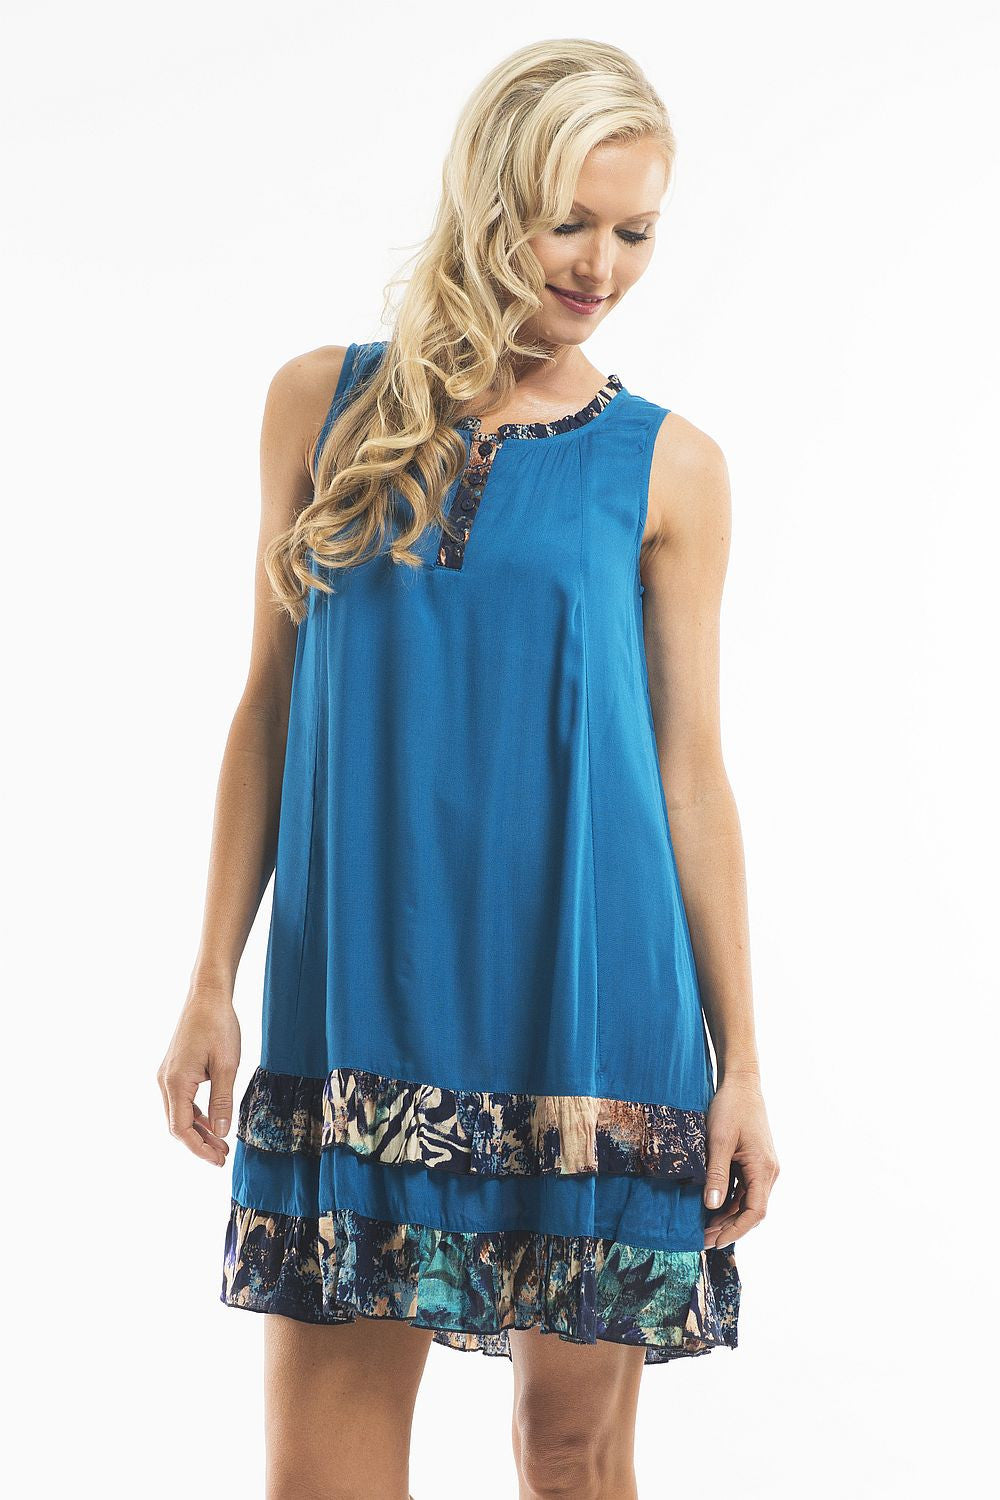 Blue Beauty Tunic - at I Love Tunics @ www.ilovetunics.com = Number One! Tunics Destination